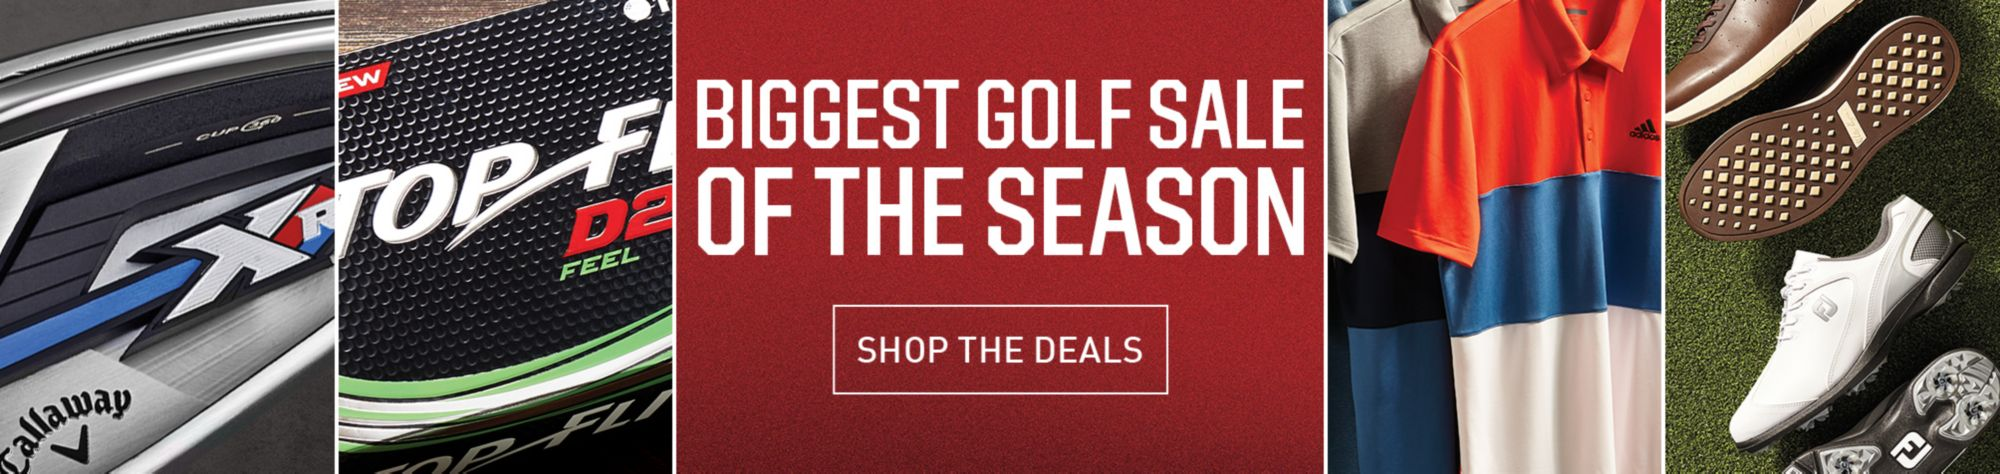 Biggest Golf Sale Of The Season - Shop Deals